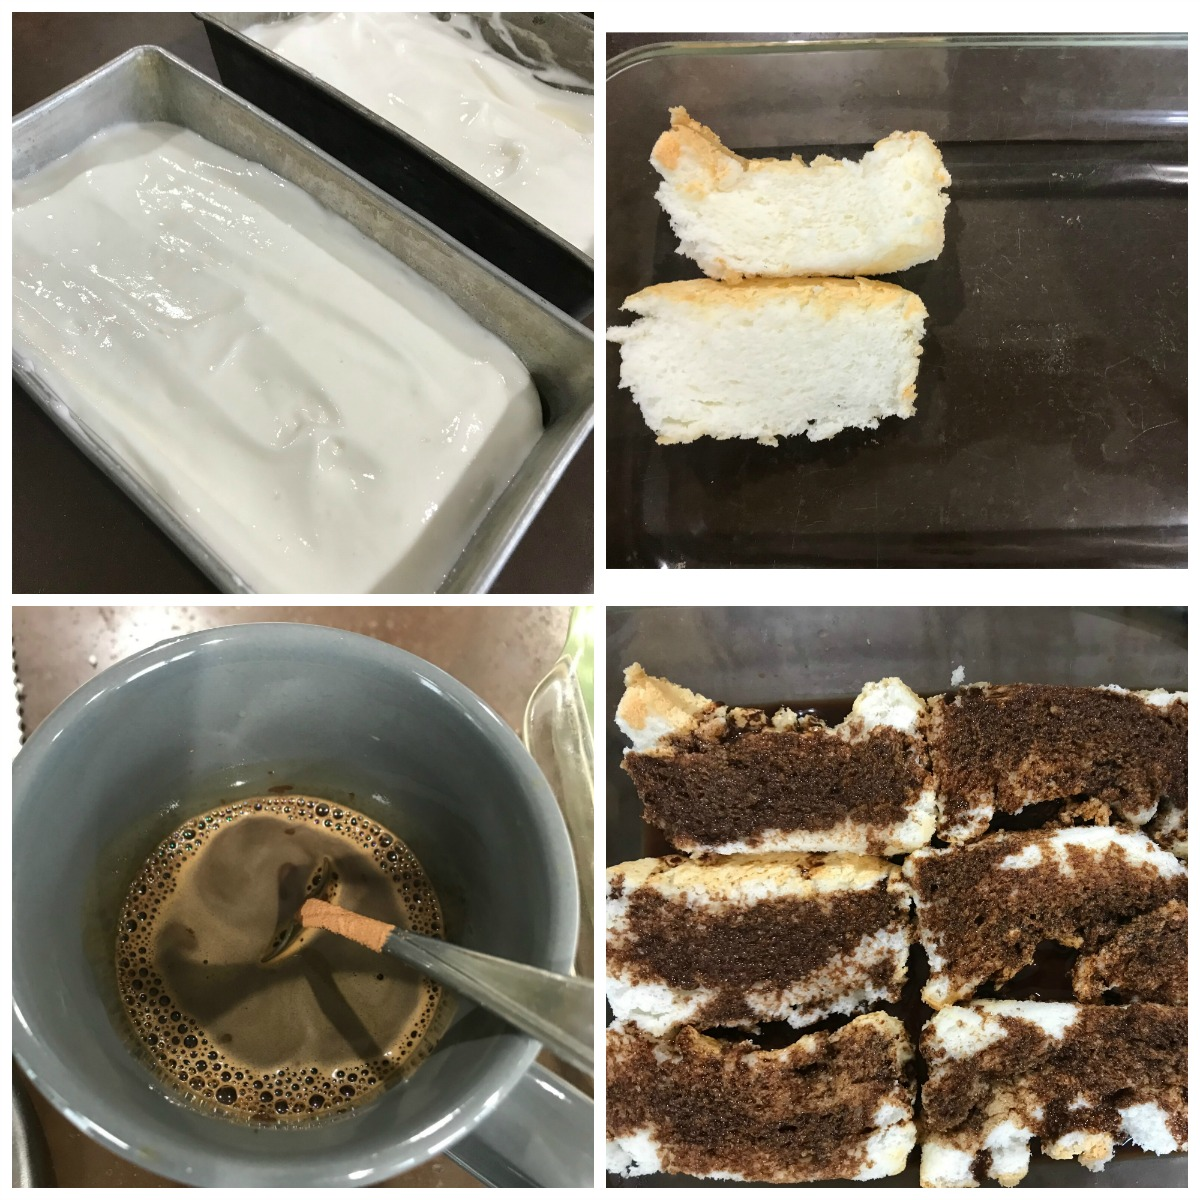 A college of pictures: angel food batter, angel food cake, coffee in a cup and coffee soaked angel food cake